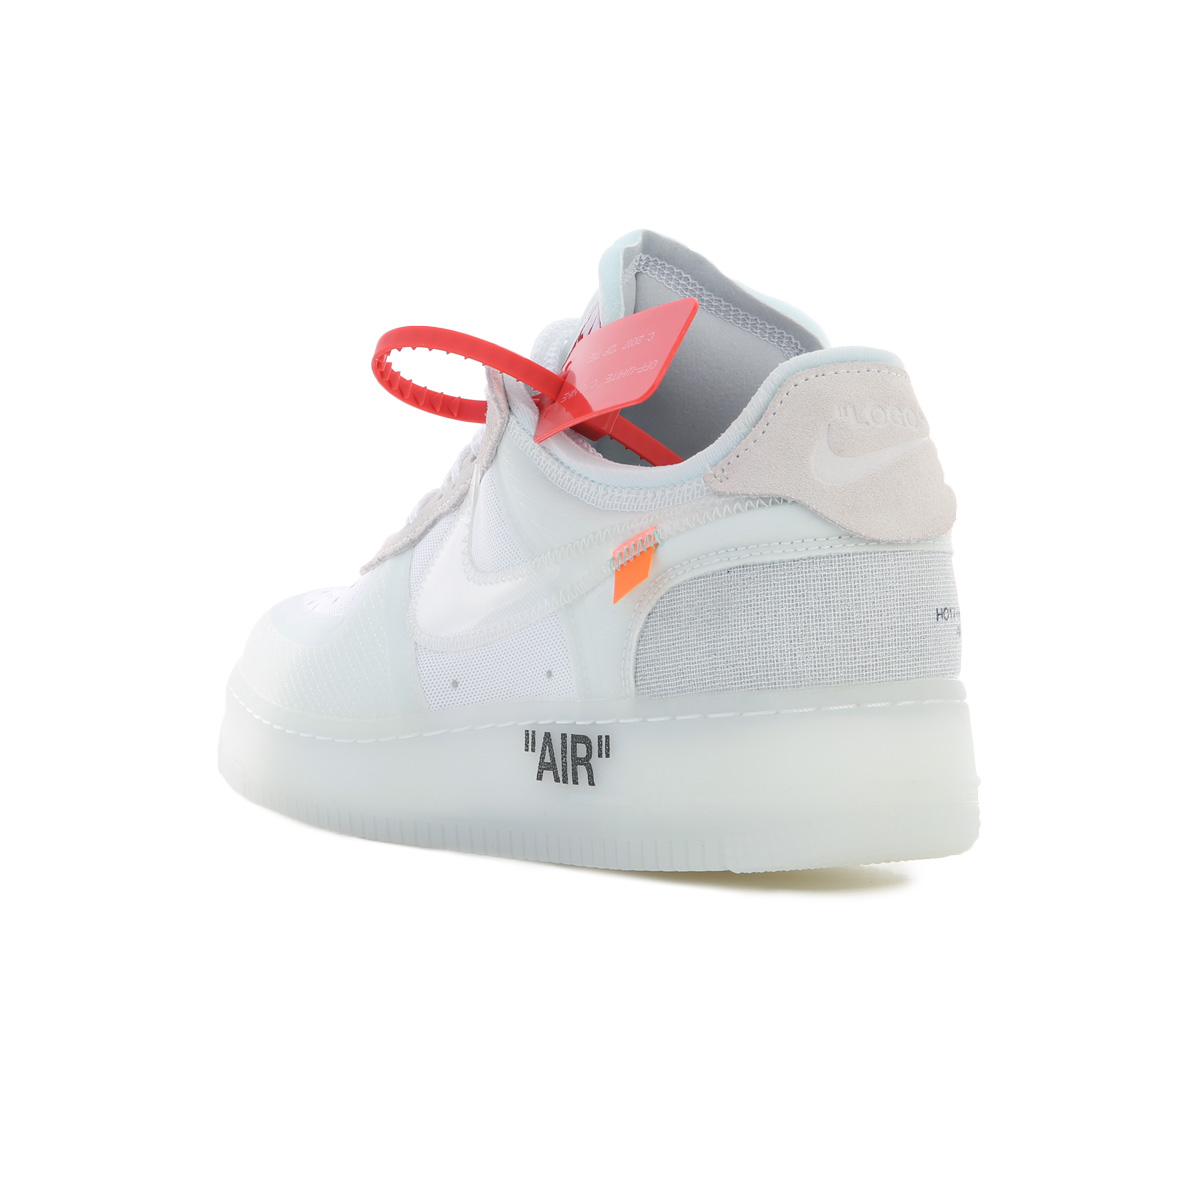 3 Air Force Off-White3.jpg